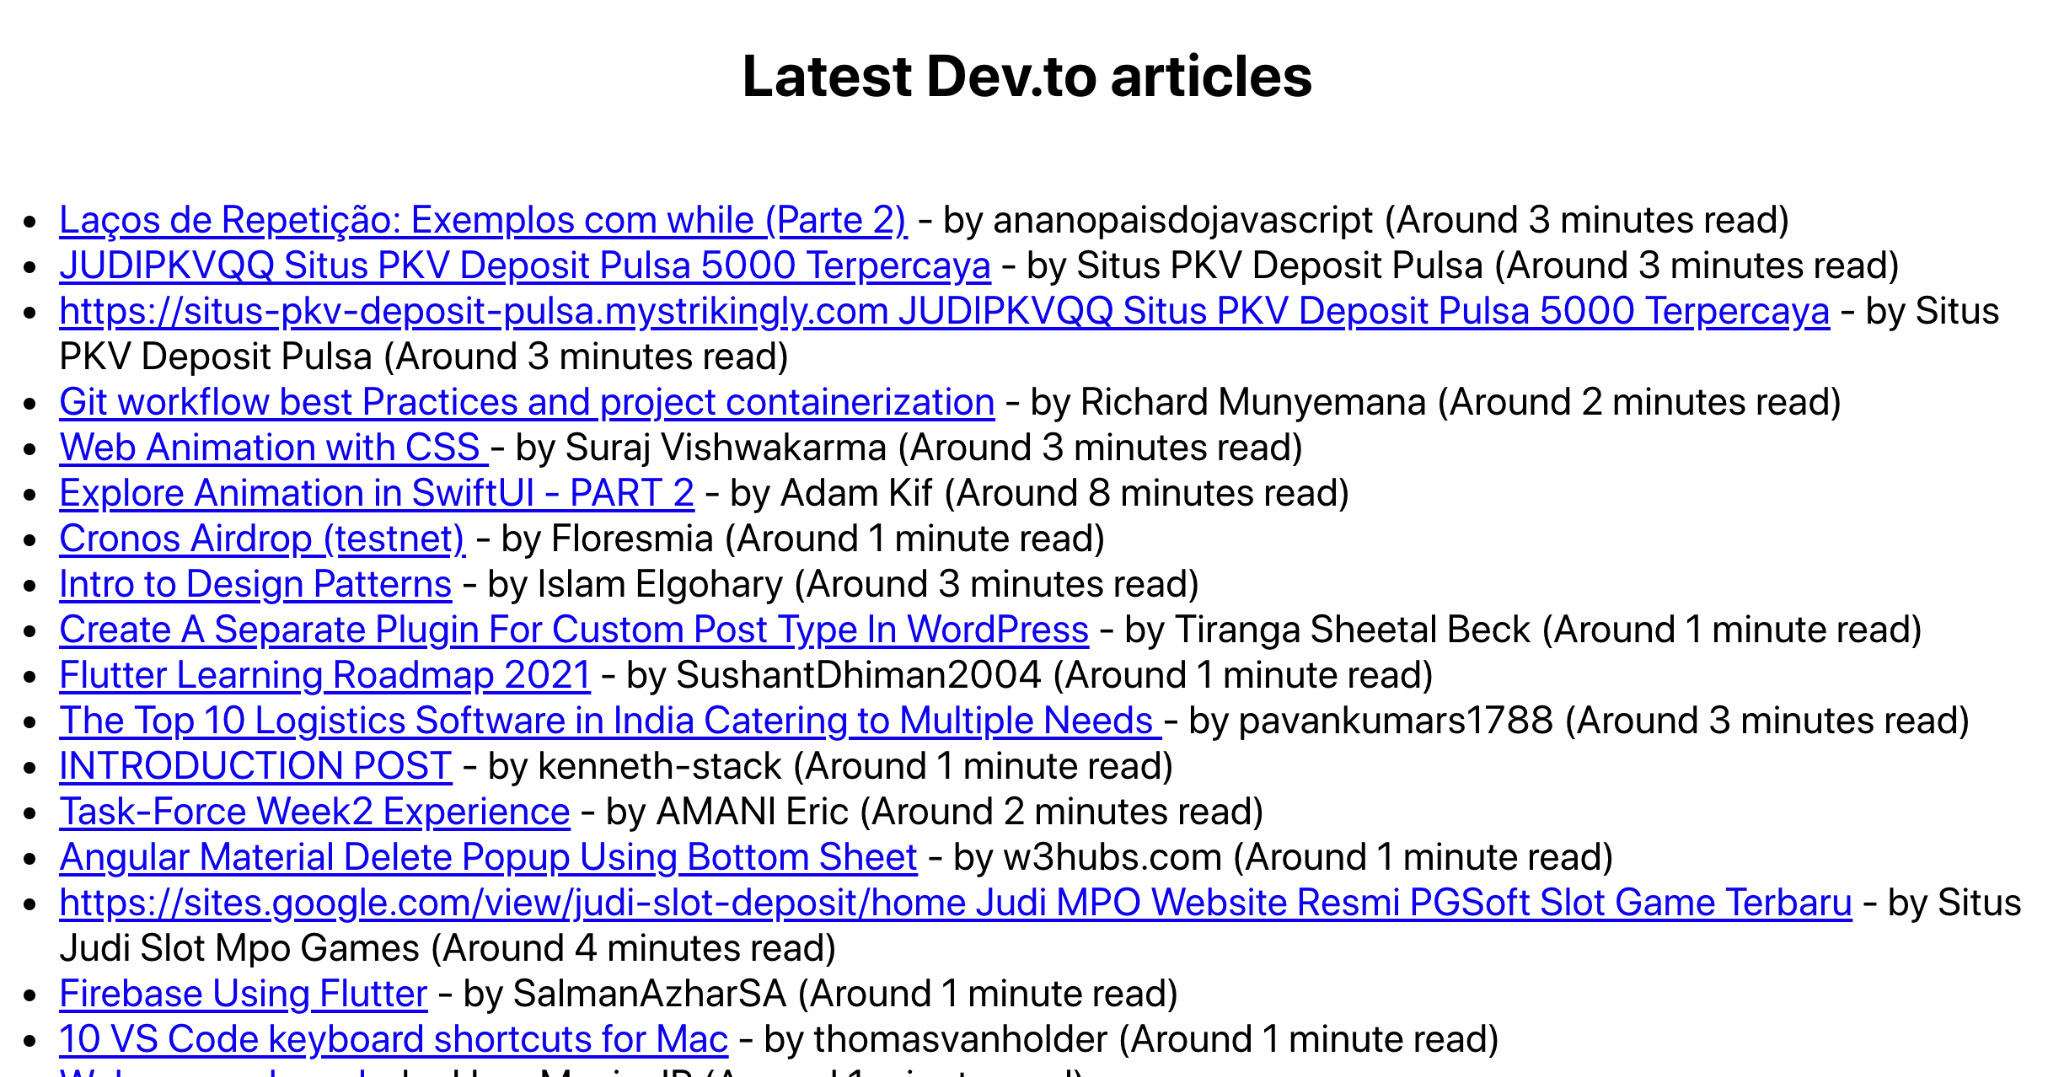 Screenshot of latest Dev.to articles with reading times noted next to each one